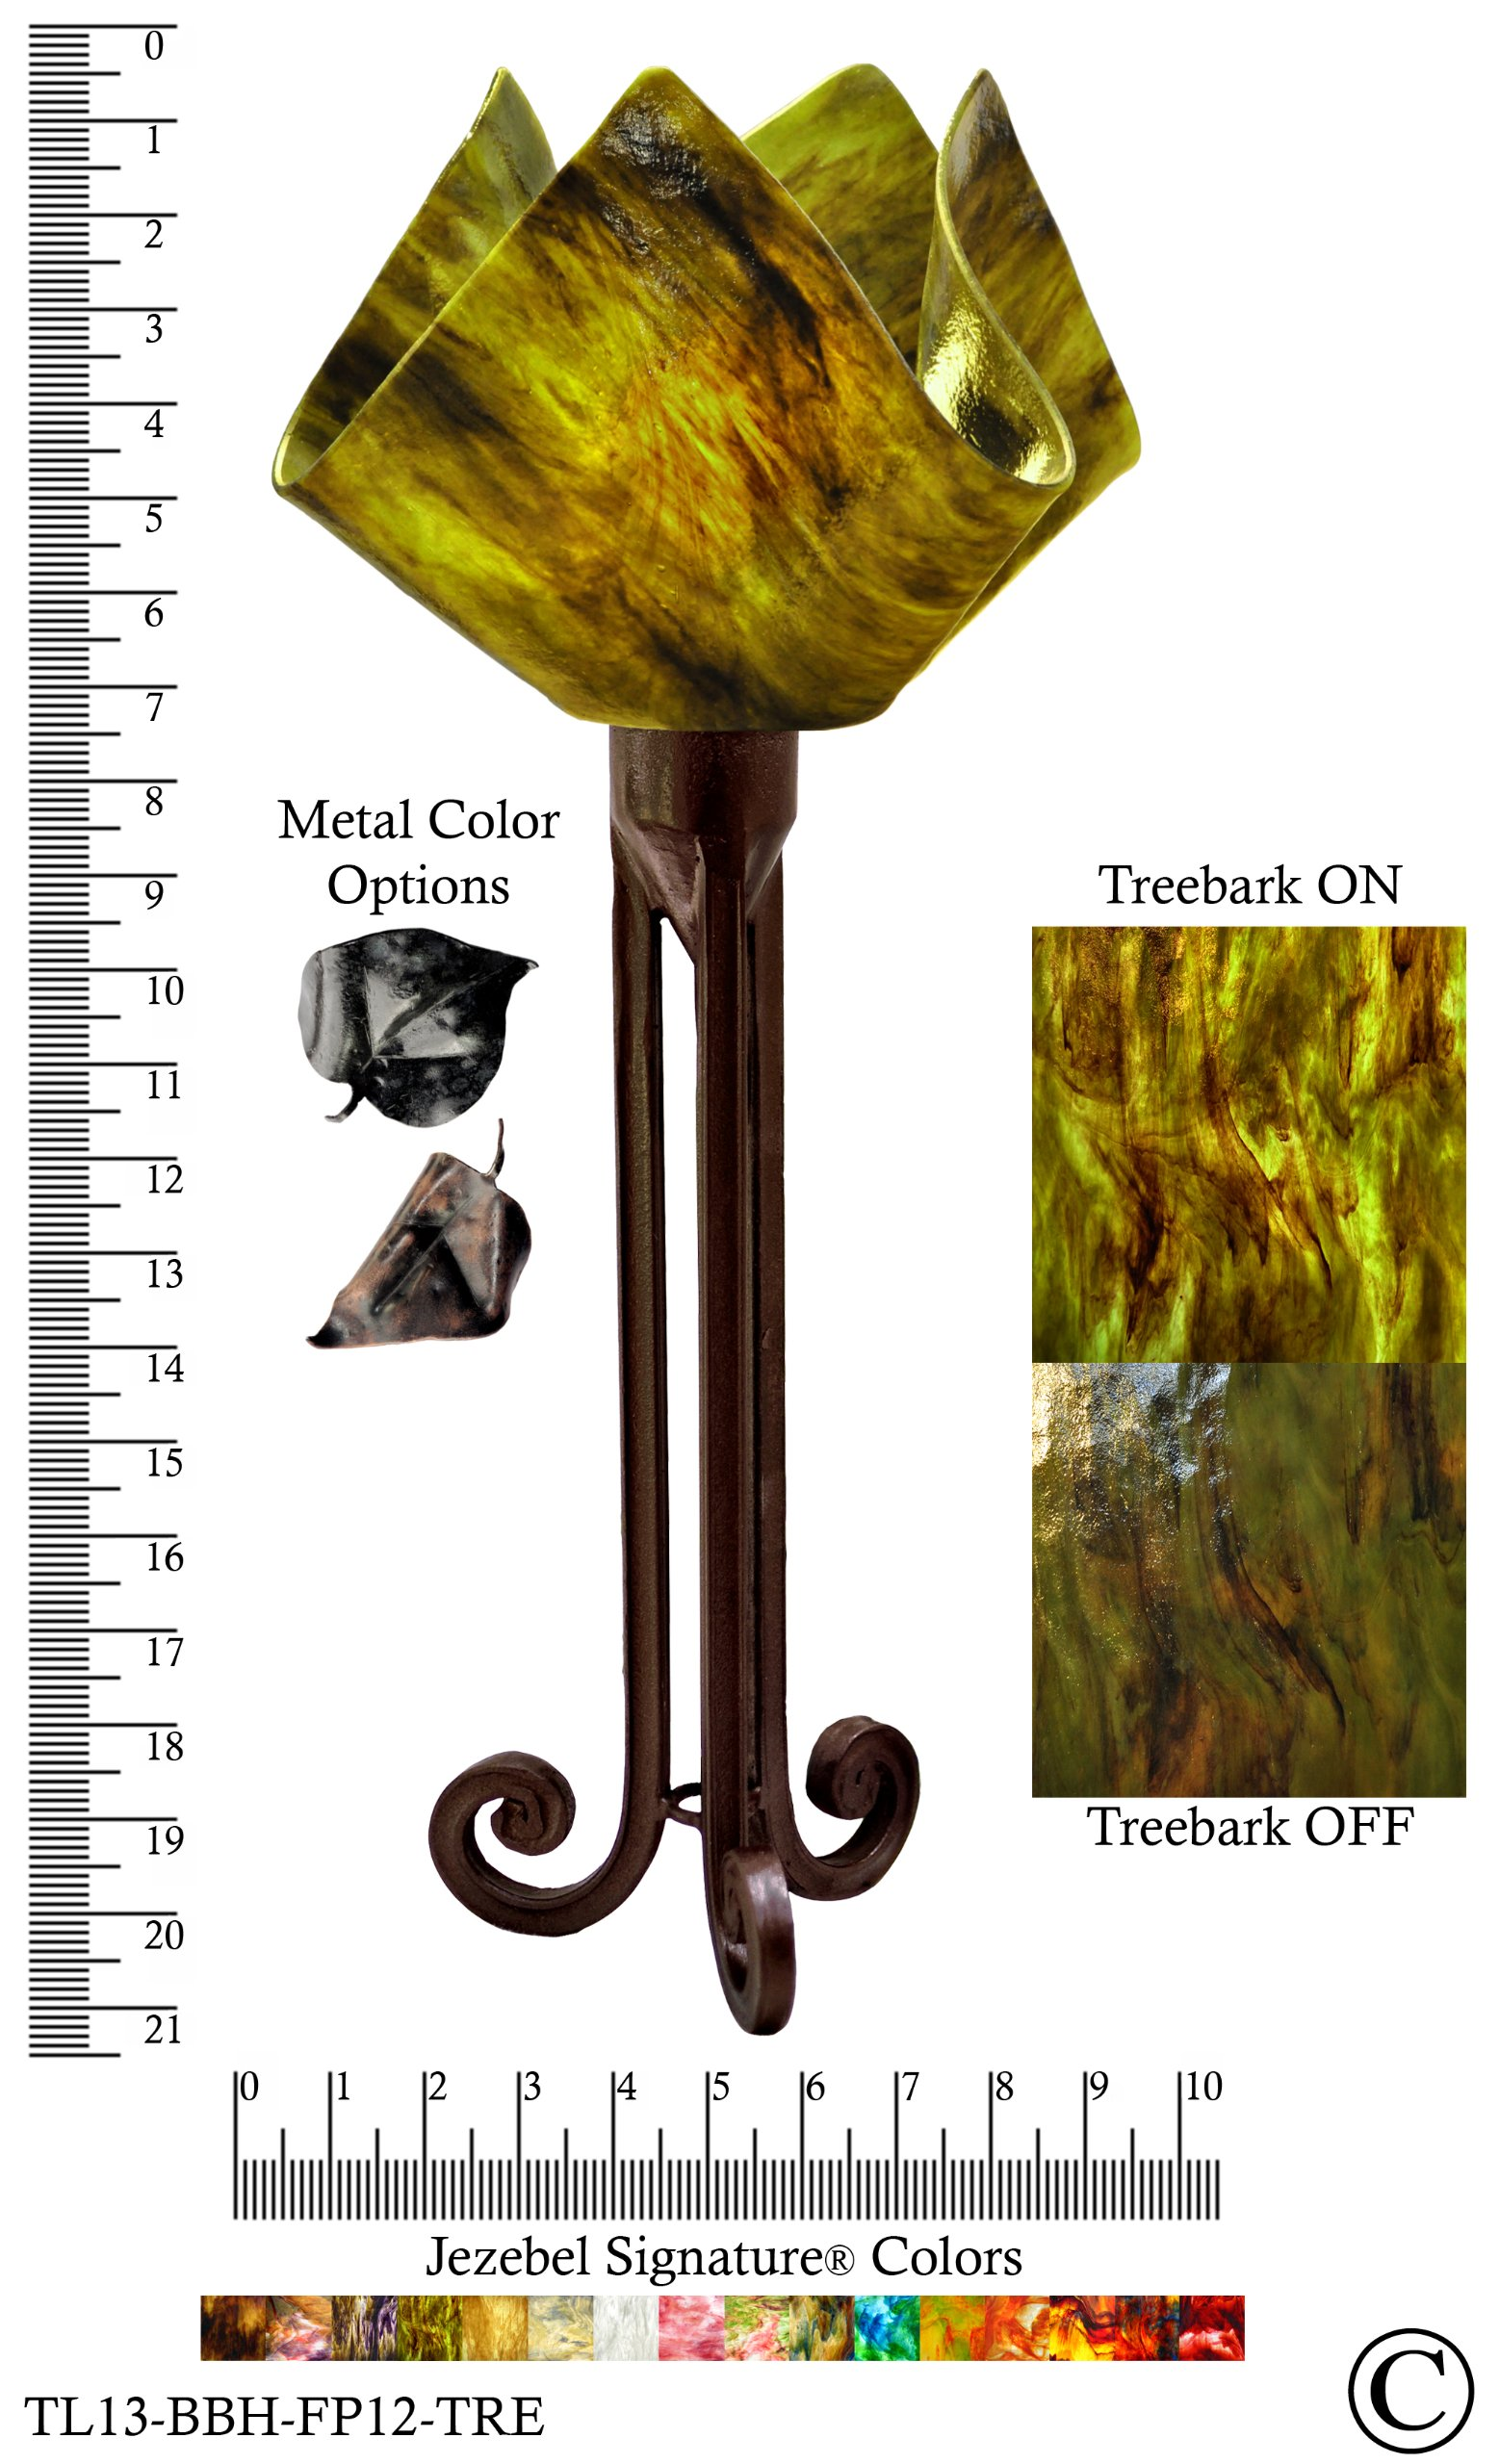 Jezebel Signature® Torch Light. Hardware: Brown with Brown Highlights. Glass: Treebark, Flame Style